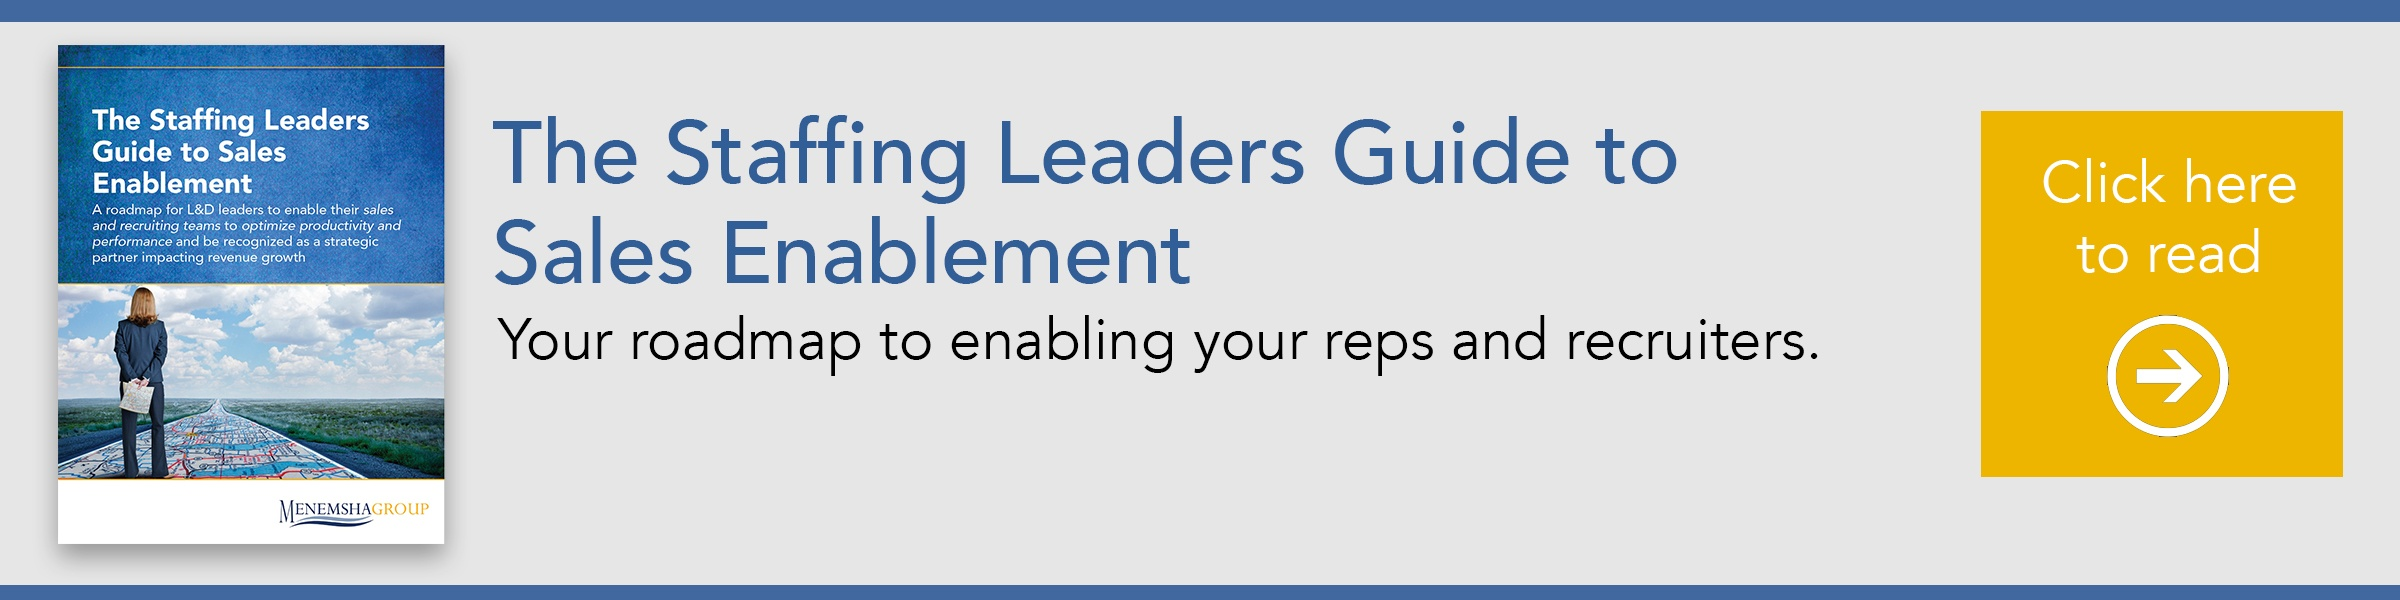 Staffing Leader's Guide to Sales Enablement